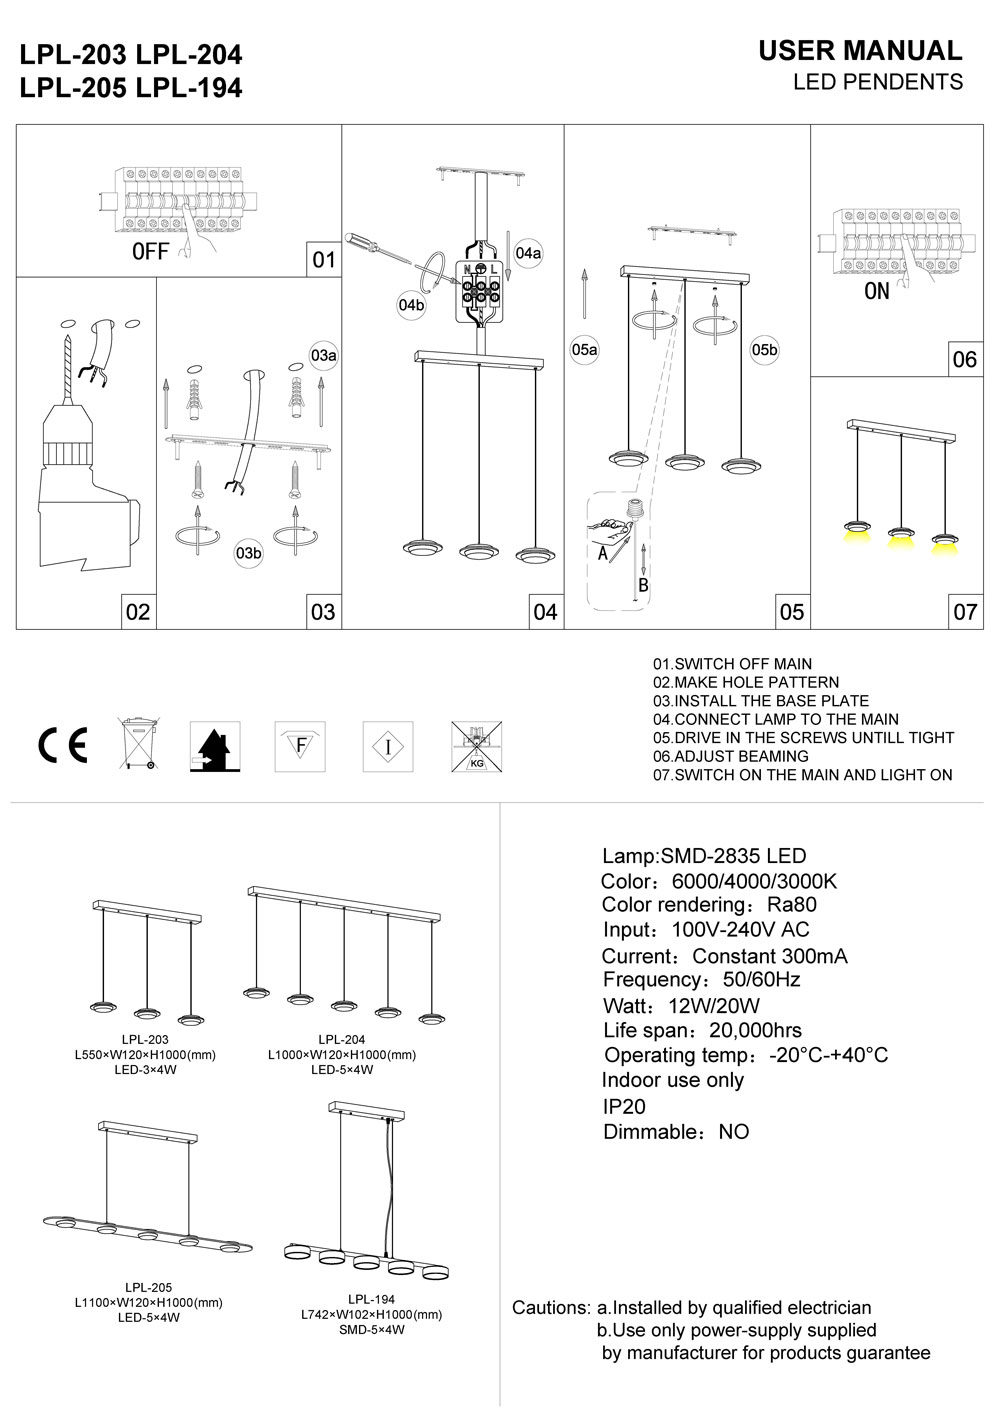 LED pendant light installation guide